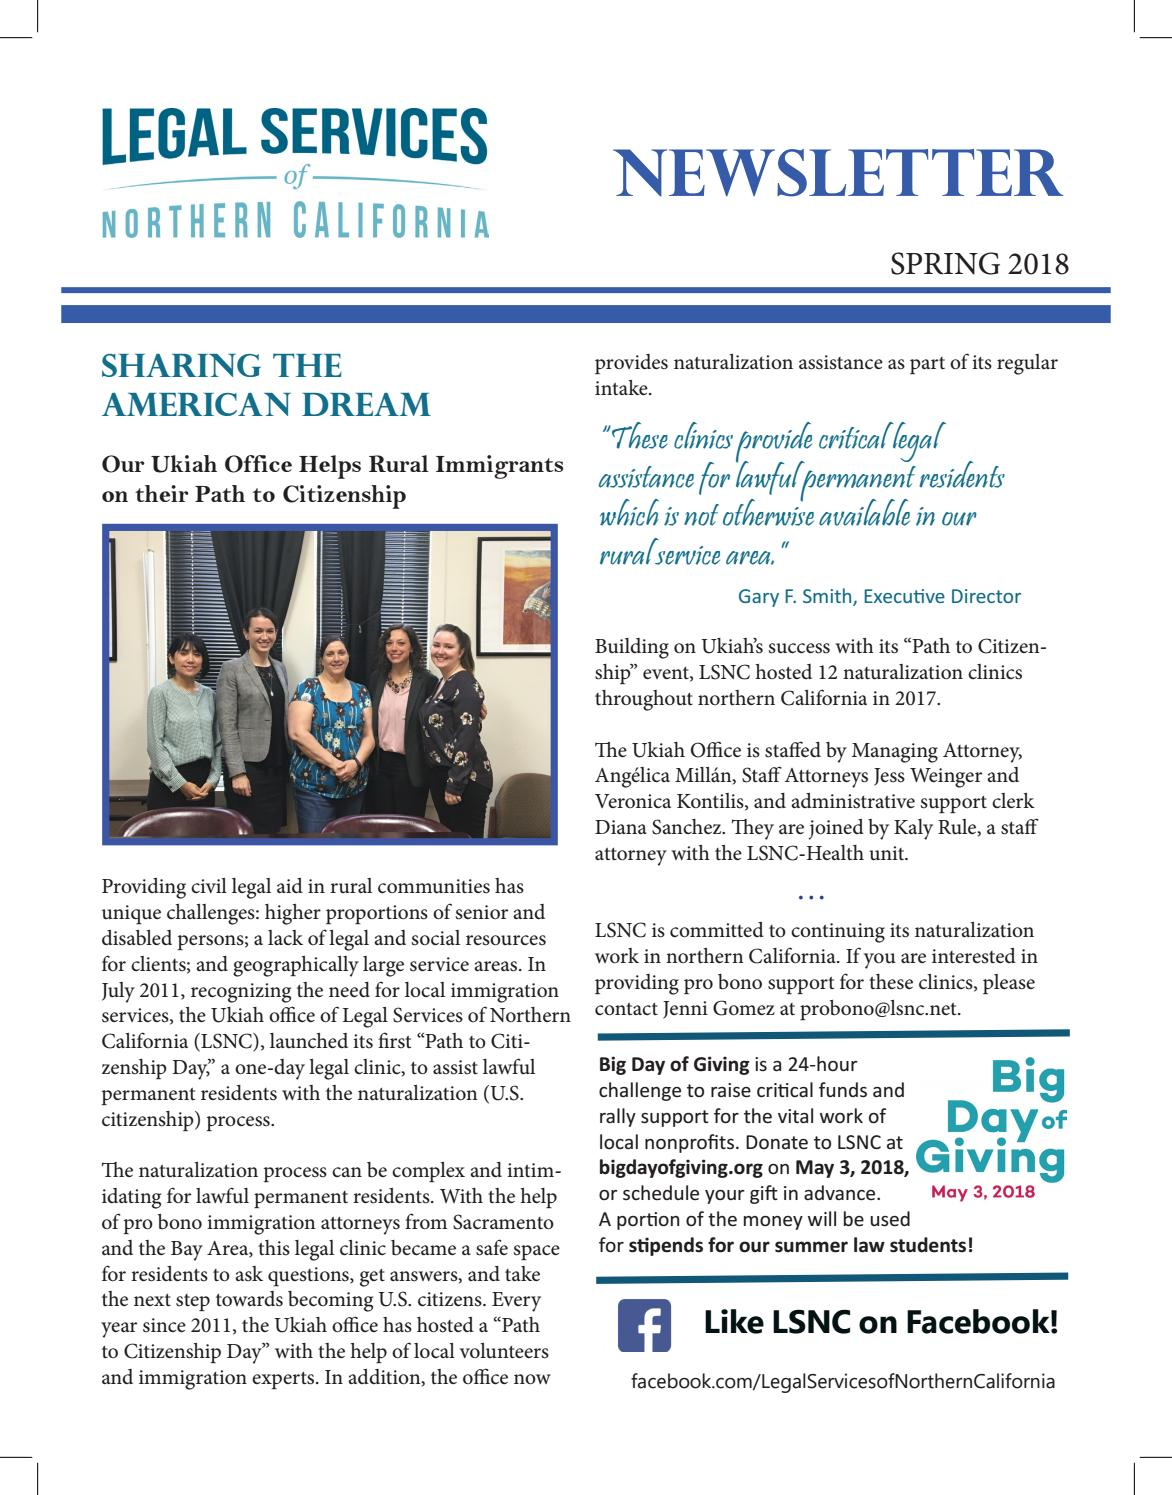 LSNC Newsletter - Spring 2018 by LSNC Development Office - issuu